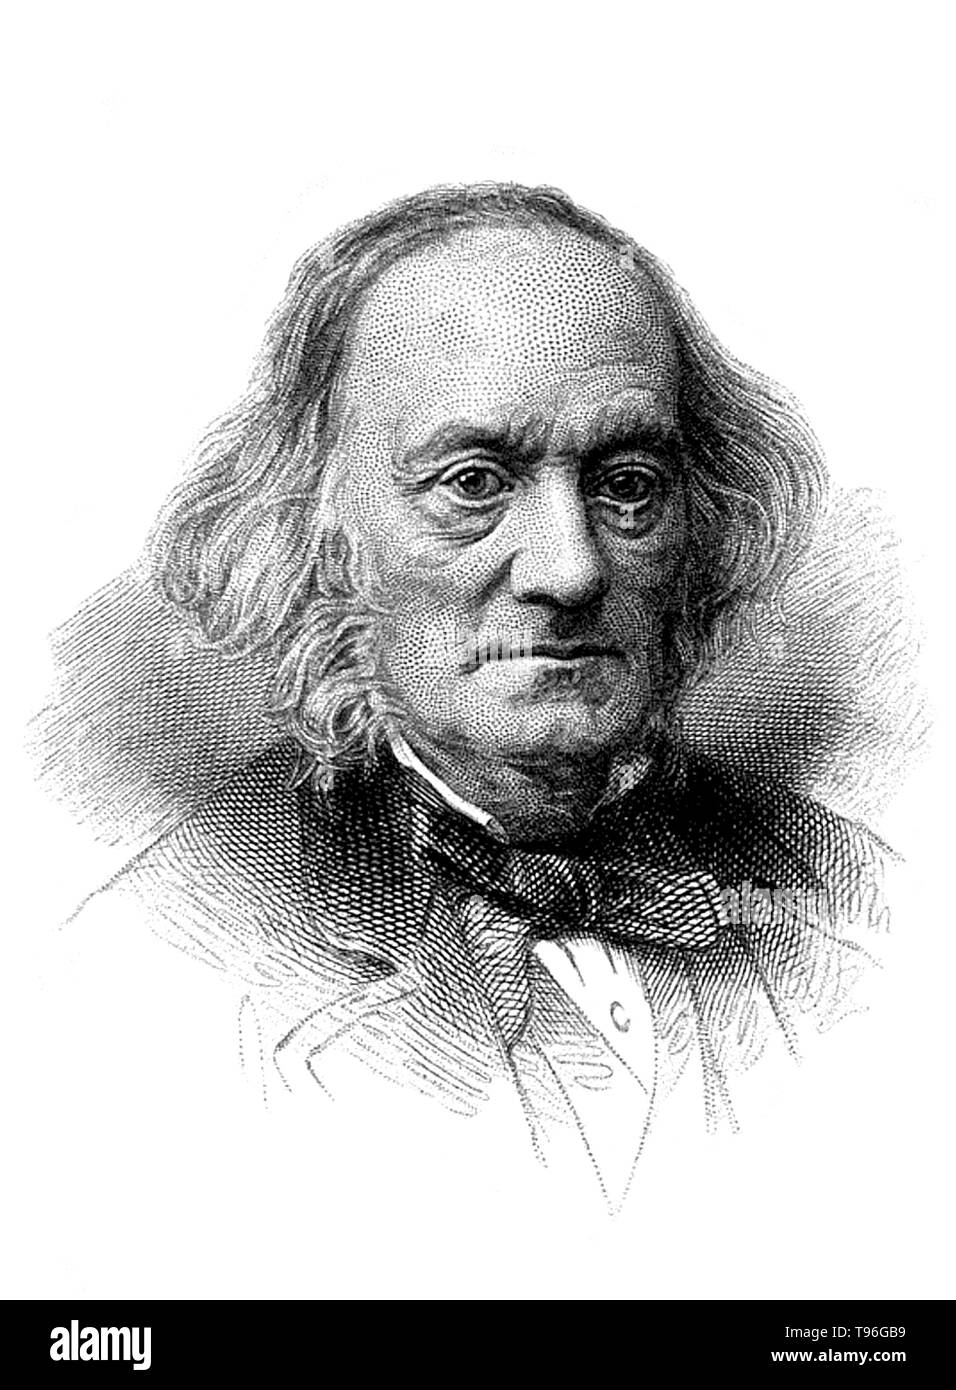 Richard Owen (July 20, 1804 - December 18, 1892) was an English biologist, comparative anatomist and paleontologist. One of his positions was that of prosector for the London Zoo, which meant that he had to dissect and preserve any zoo animals that died in captivity. This gave him vast experience with the anatomy of exotic animals. He produced a vast array of scientific work, but is probably best remembered today for coining the word Dinosauria. - Stock Image